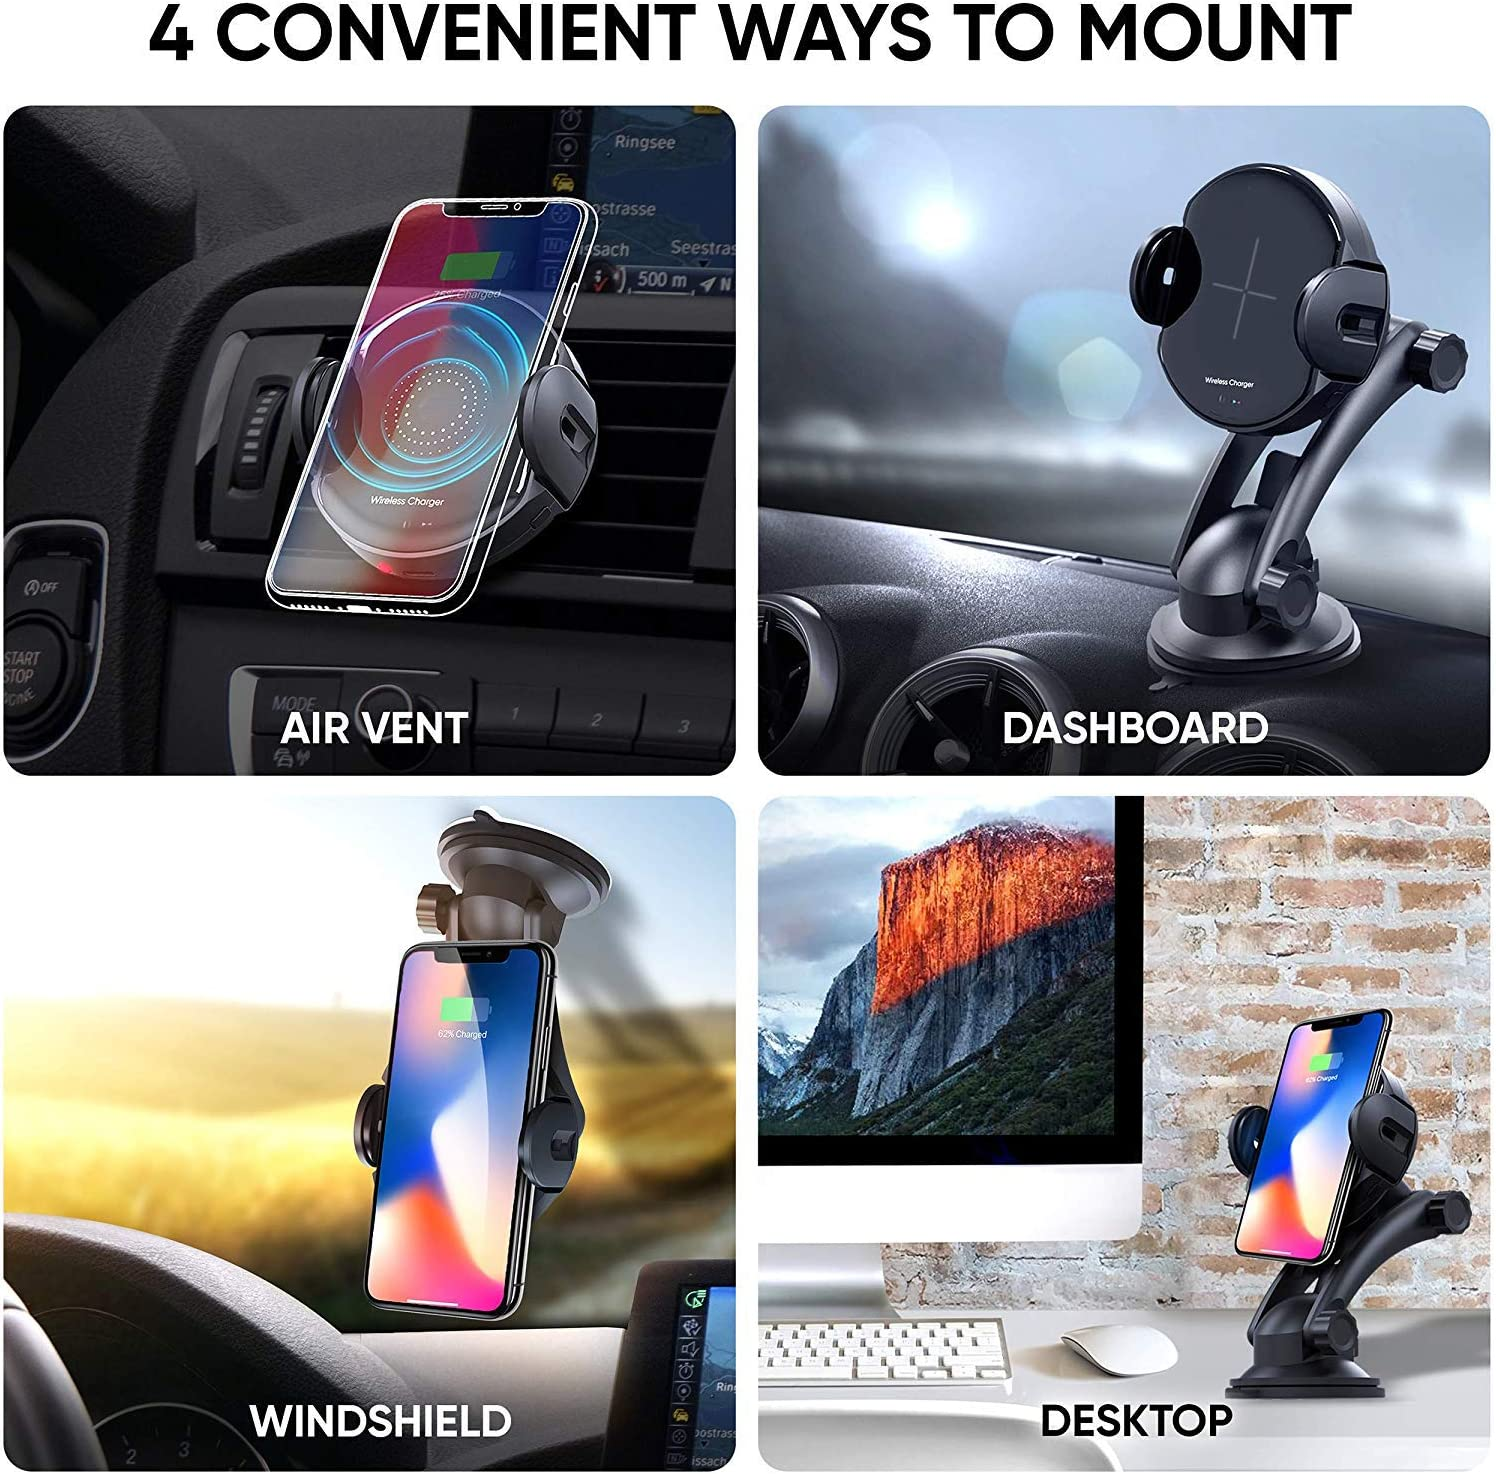 New Self-Adjusting Qi Charger /& Mount by Indigi for iPhone XR//XS//XS Max 360 Rotation Air Vent//Window Mounts Quick Charge